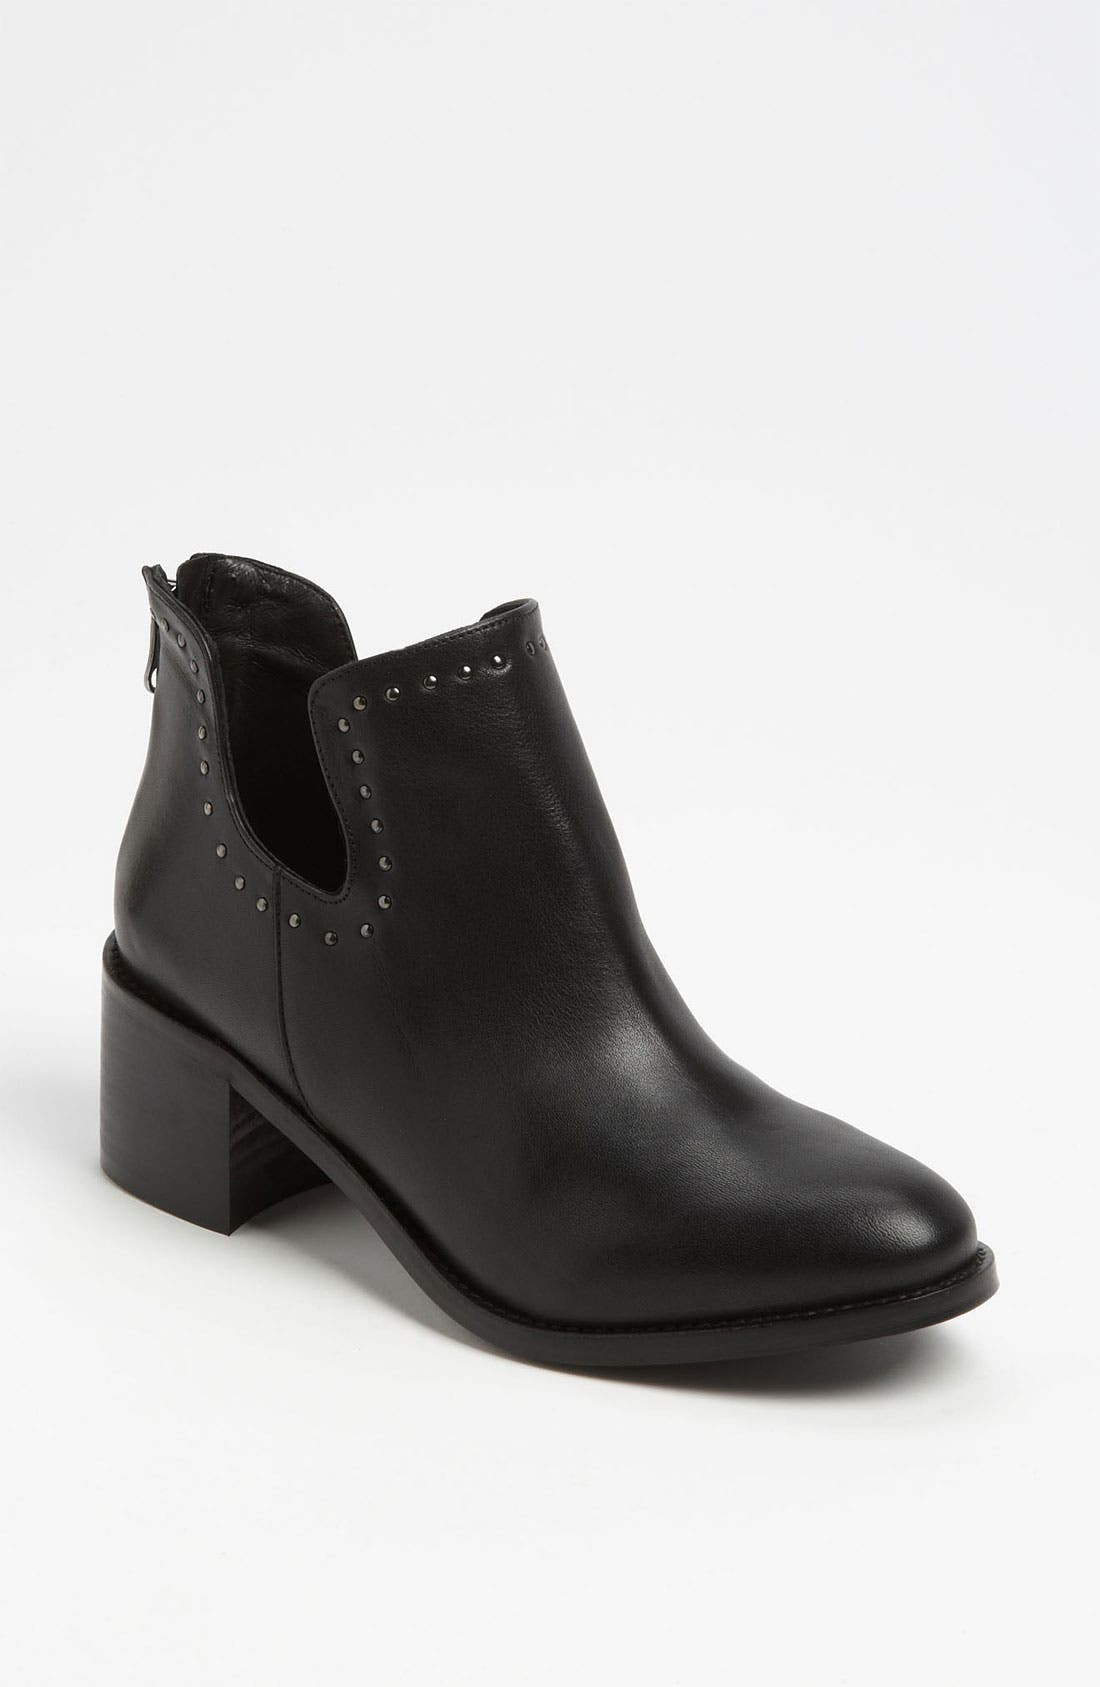 Main Image - Topshop 'Accent' Boot